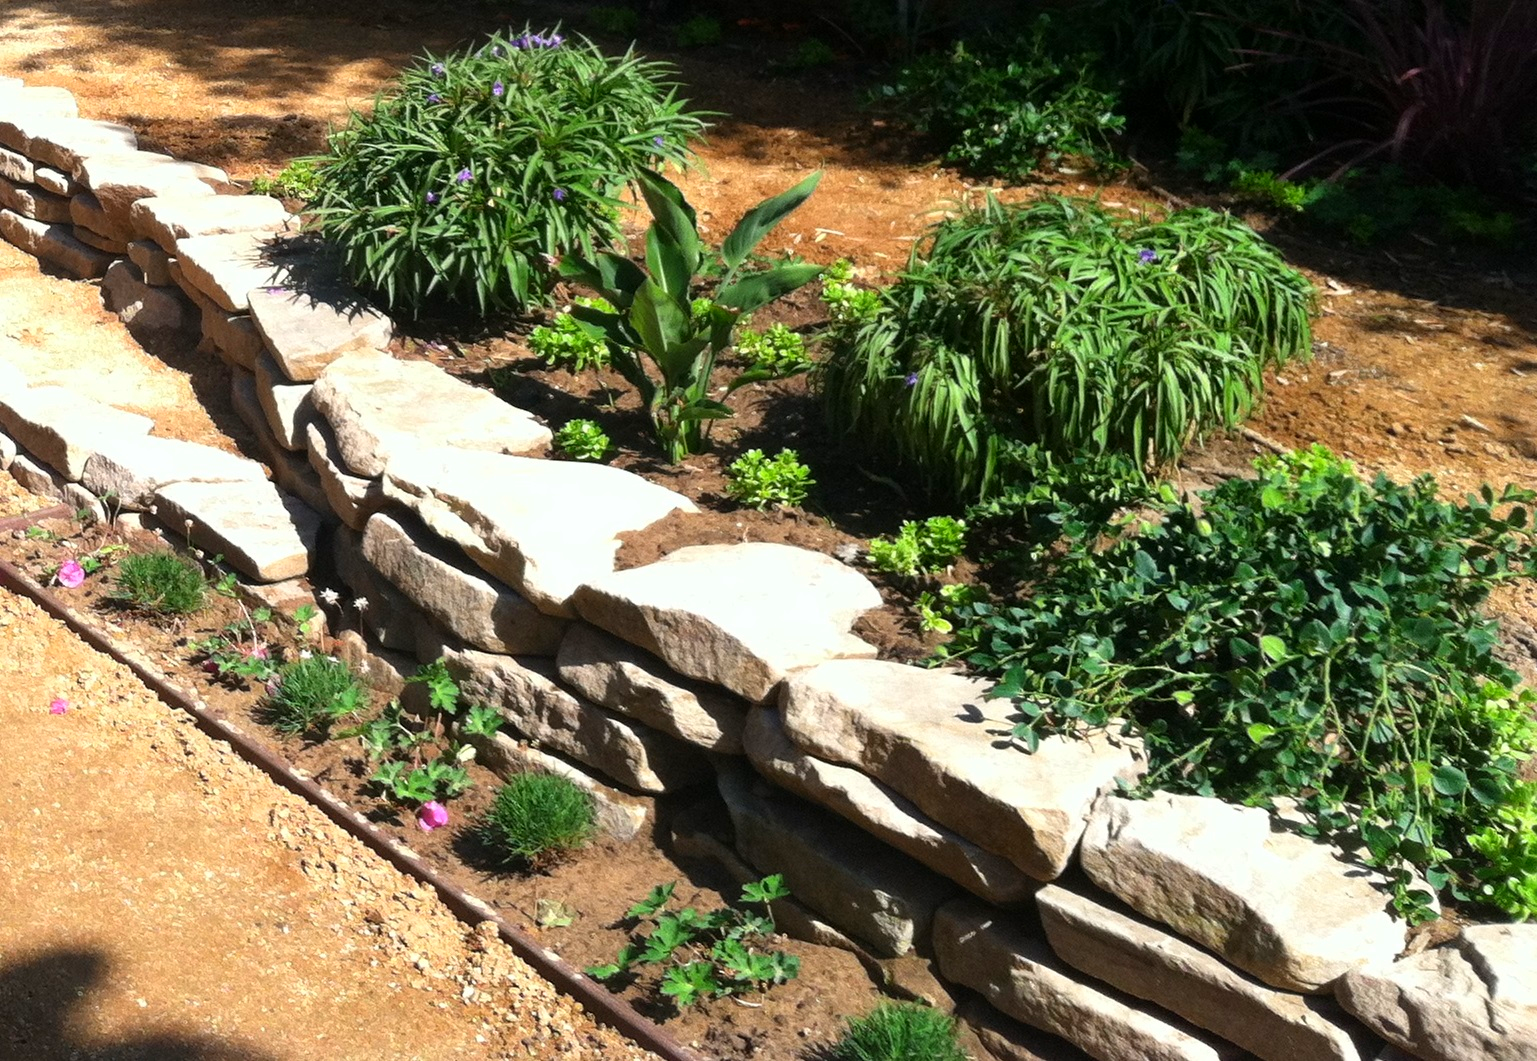 Close Up of Garden Bed